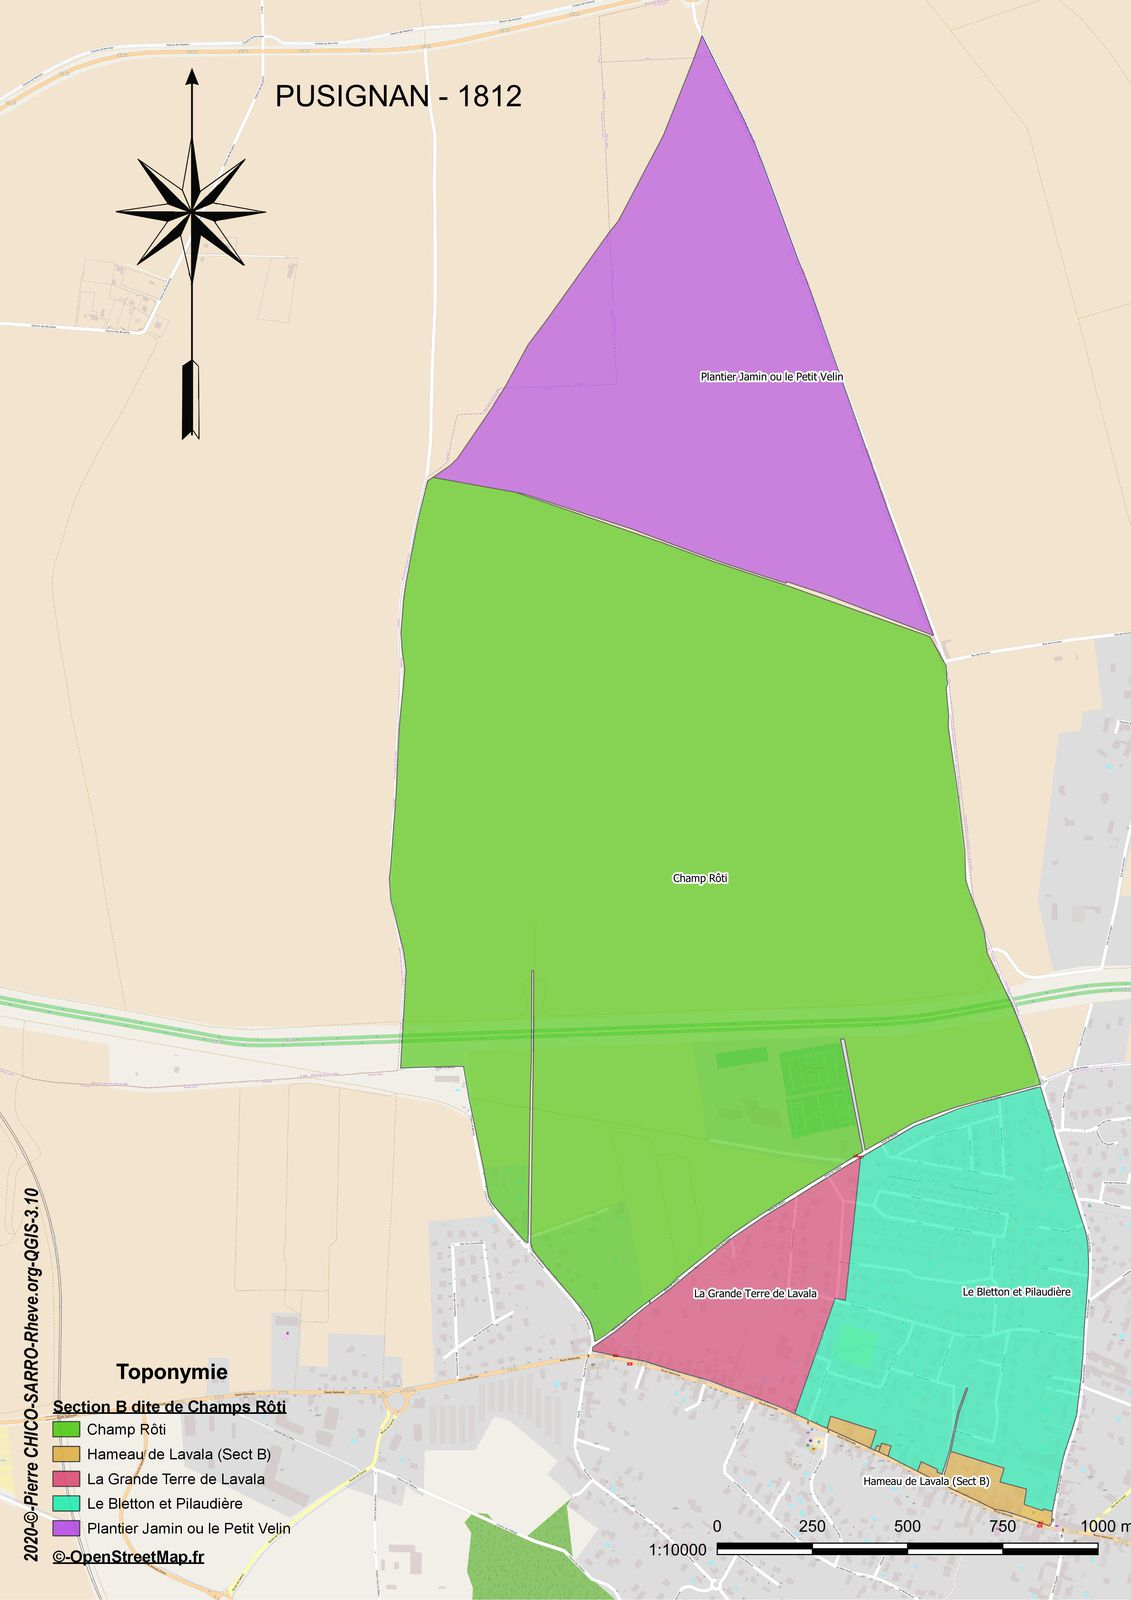 Distribution des toponymes de la section B dite de Champs Rôti à Pusignan en 1812